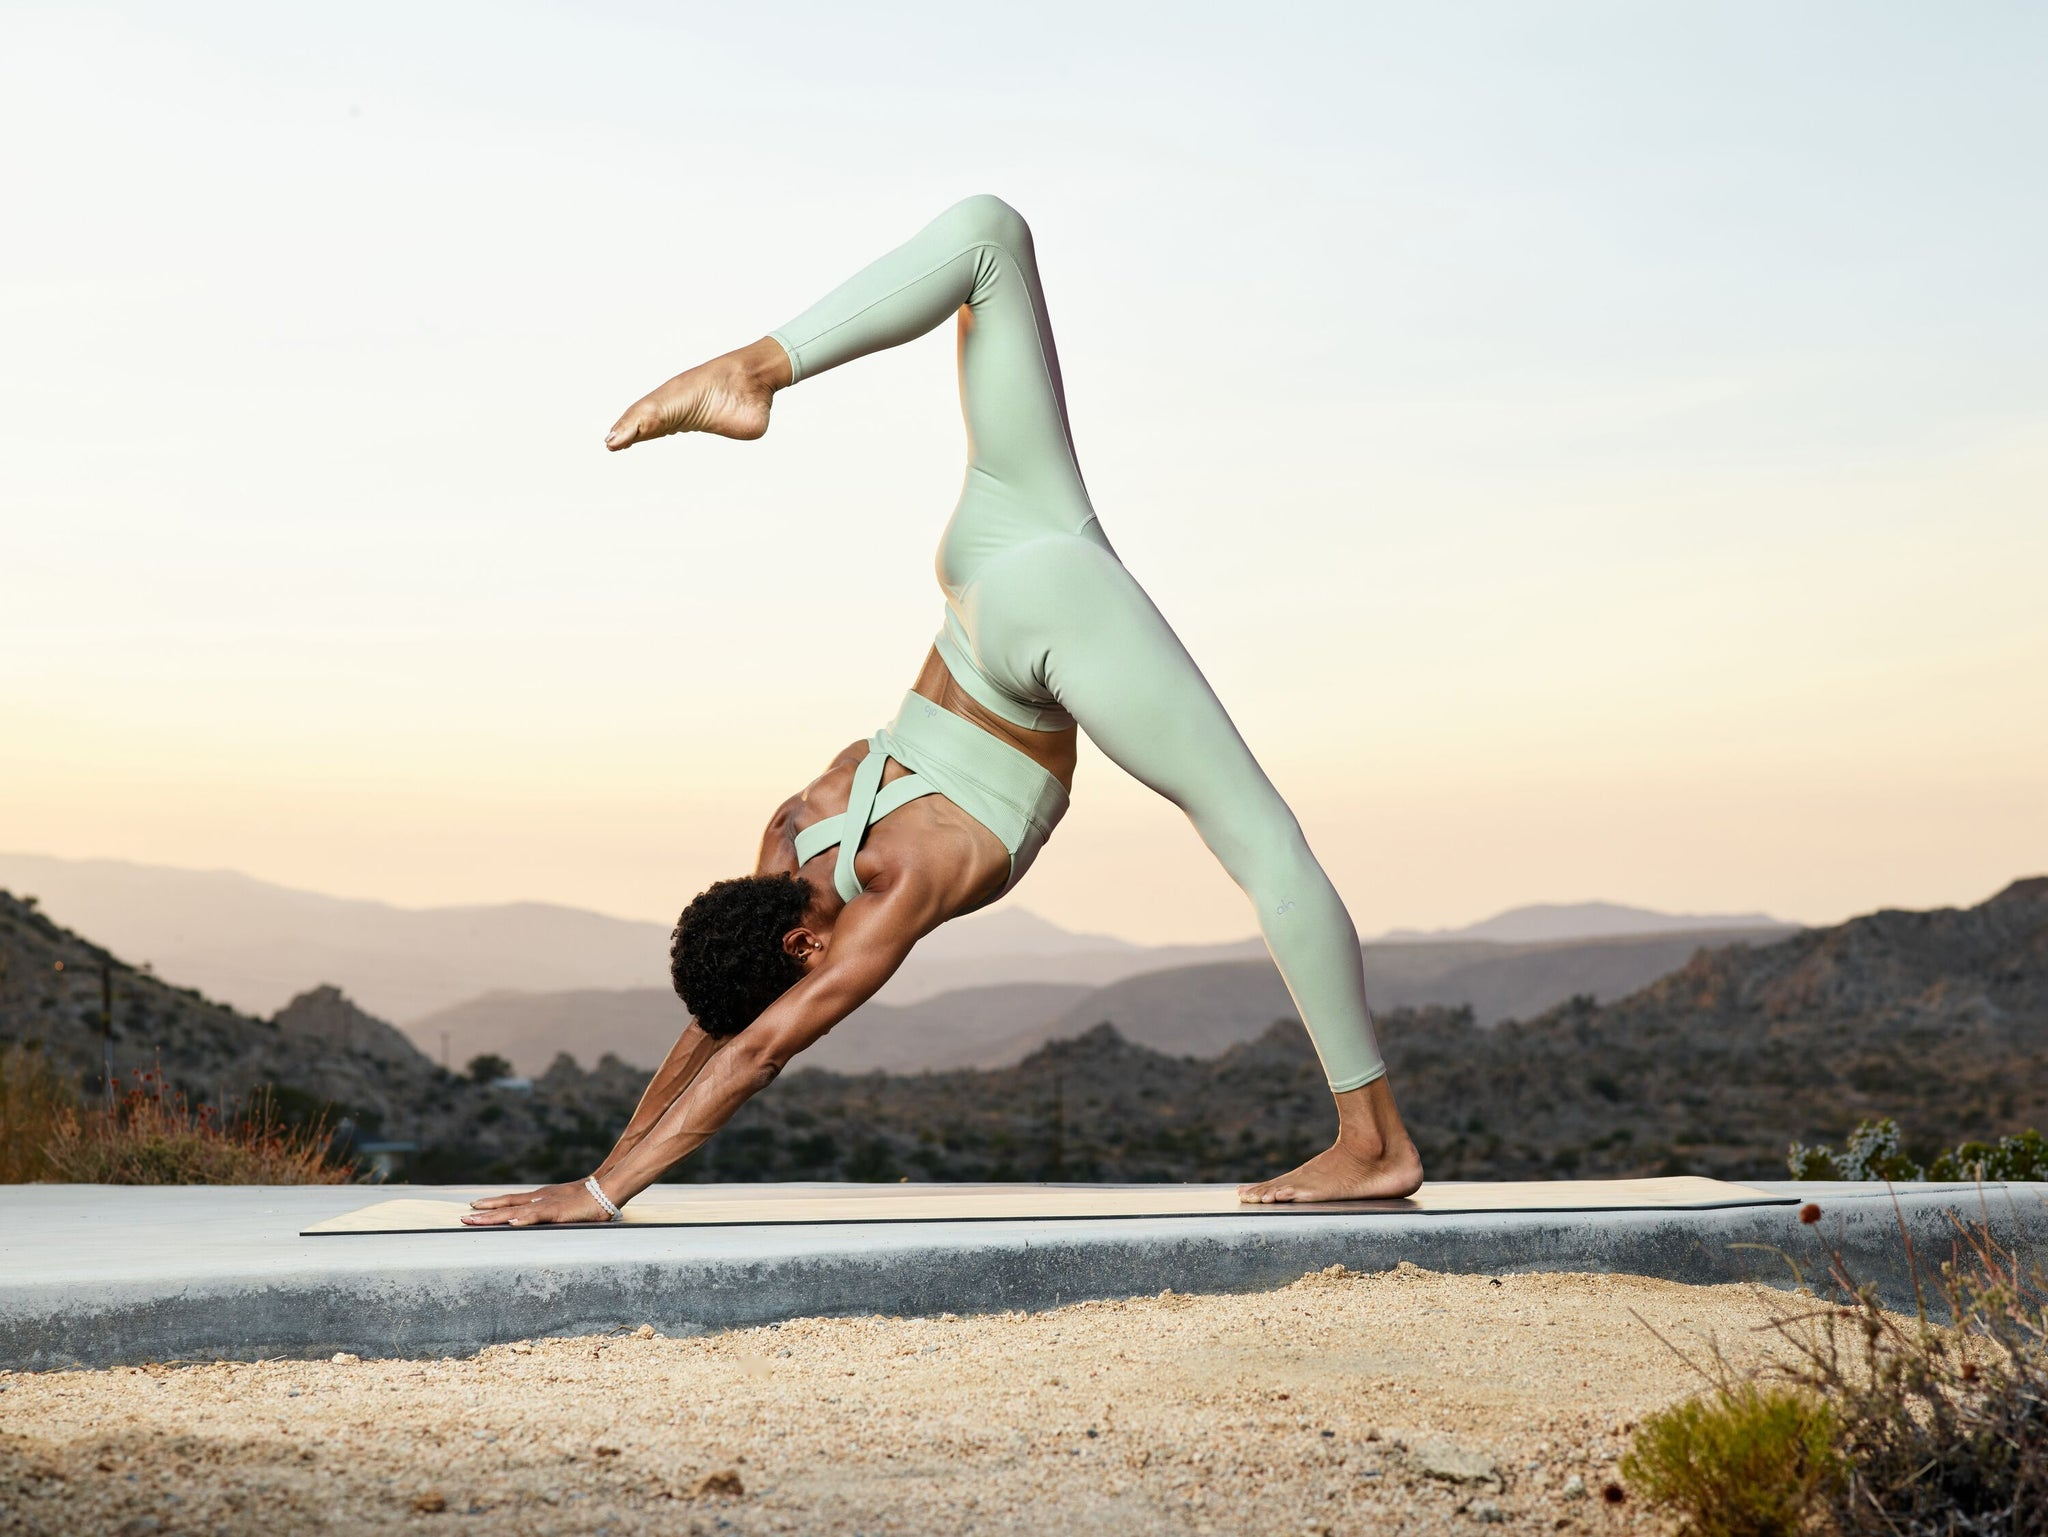 A woman performing a Three-Legged Downward Dog in front of a sunset wearing a workout set with matching pastel green yoga leggings and cross-back sports bra.